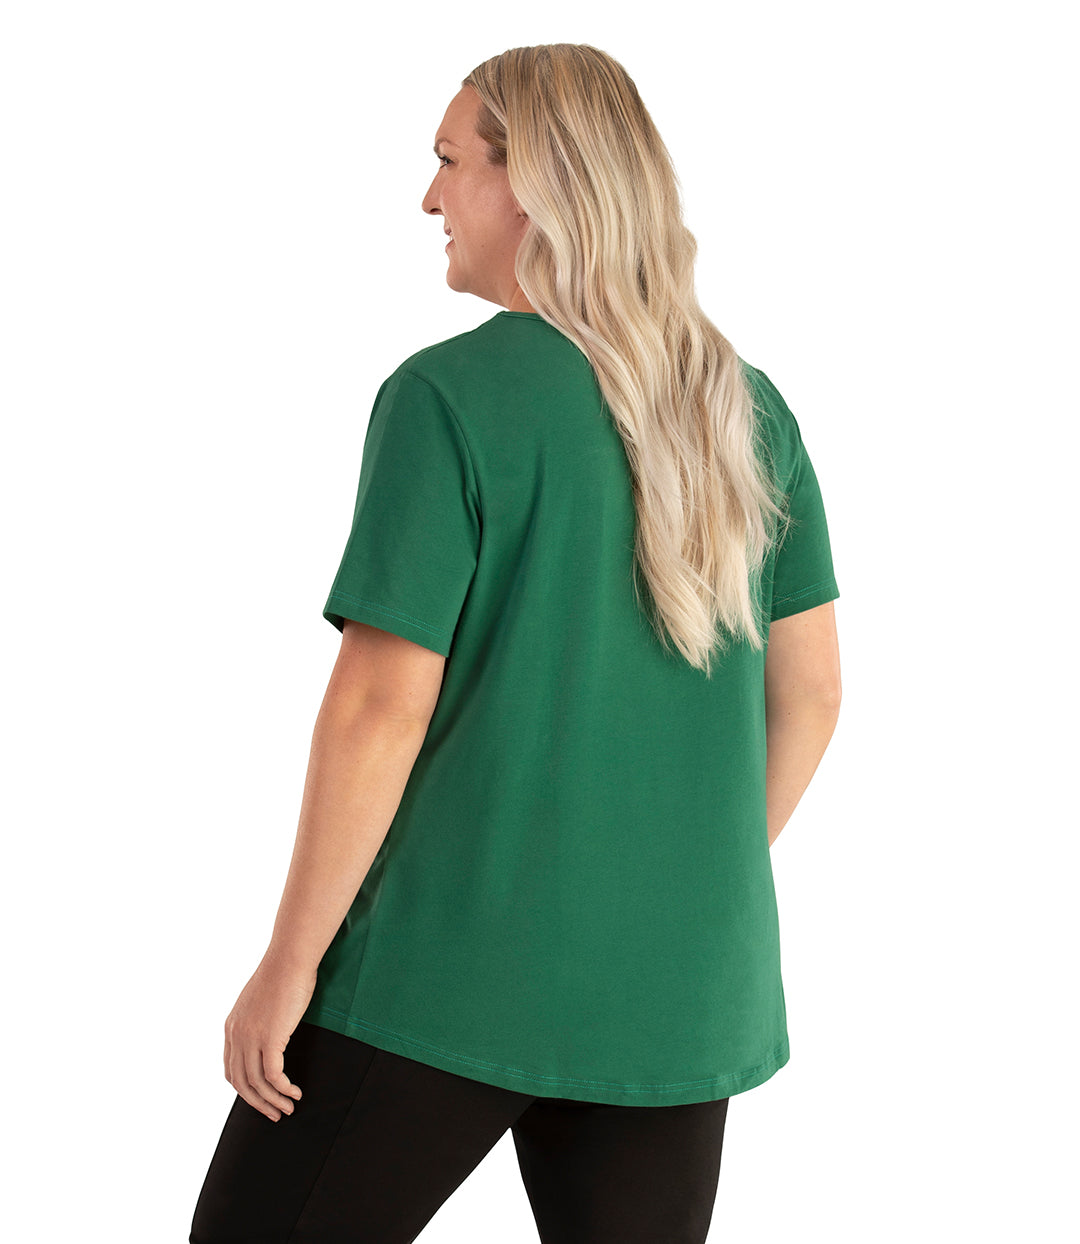 Stretch Naturals Lite Short Sleeve Scoop Neck Top Classic Colors